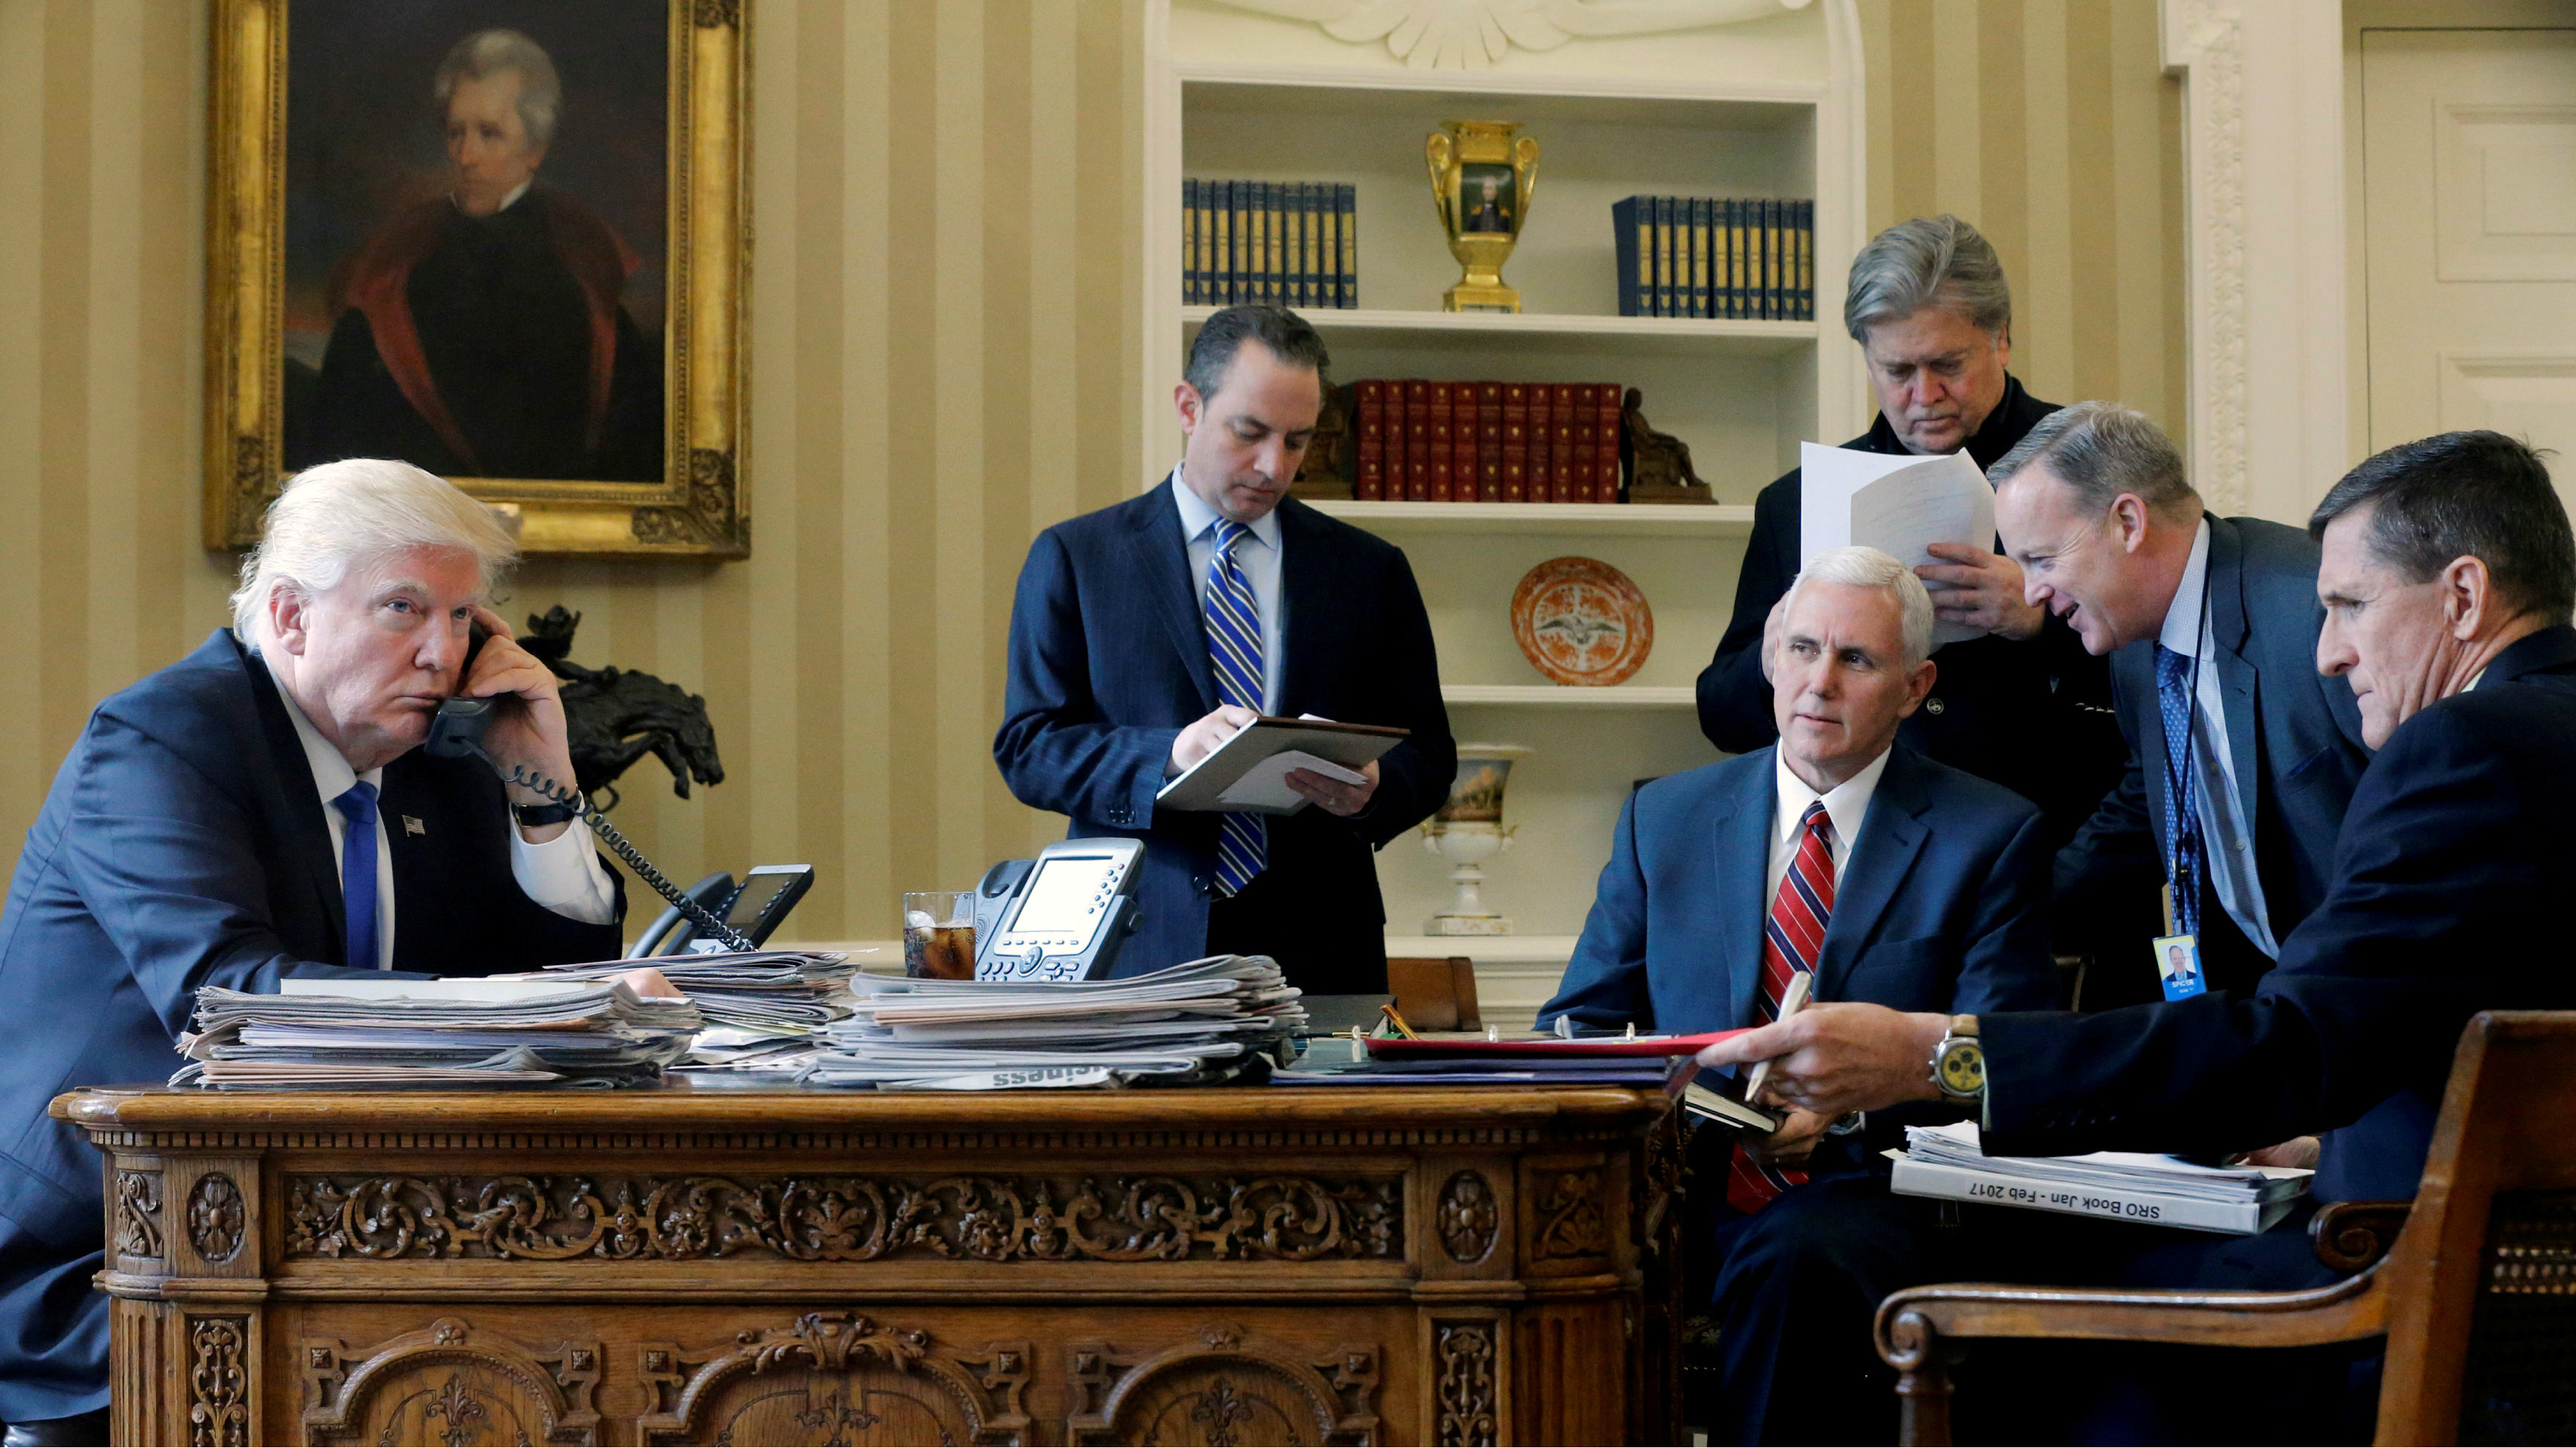 US President Trump and senior advisors in the Oval Office